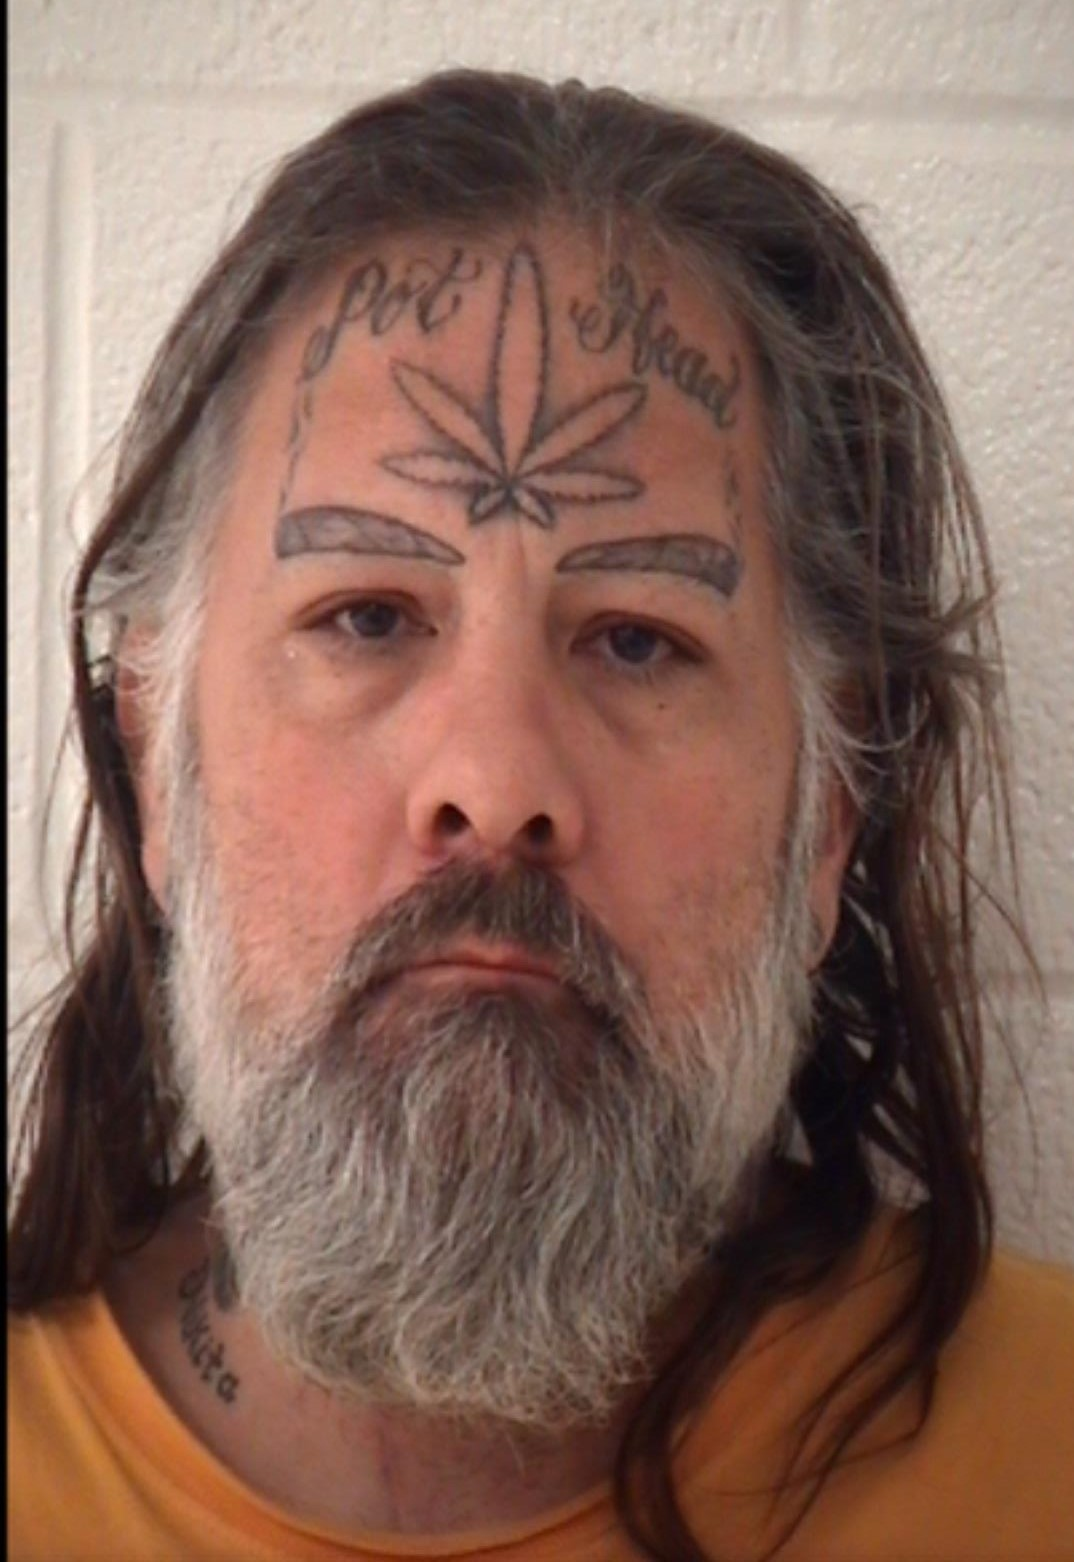 man has pot head tattoo